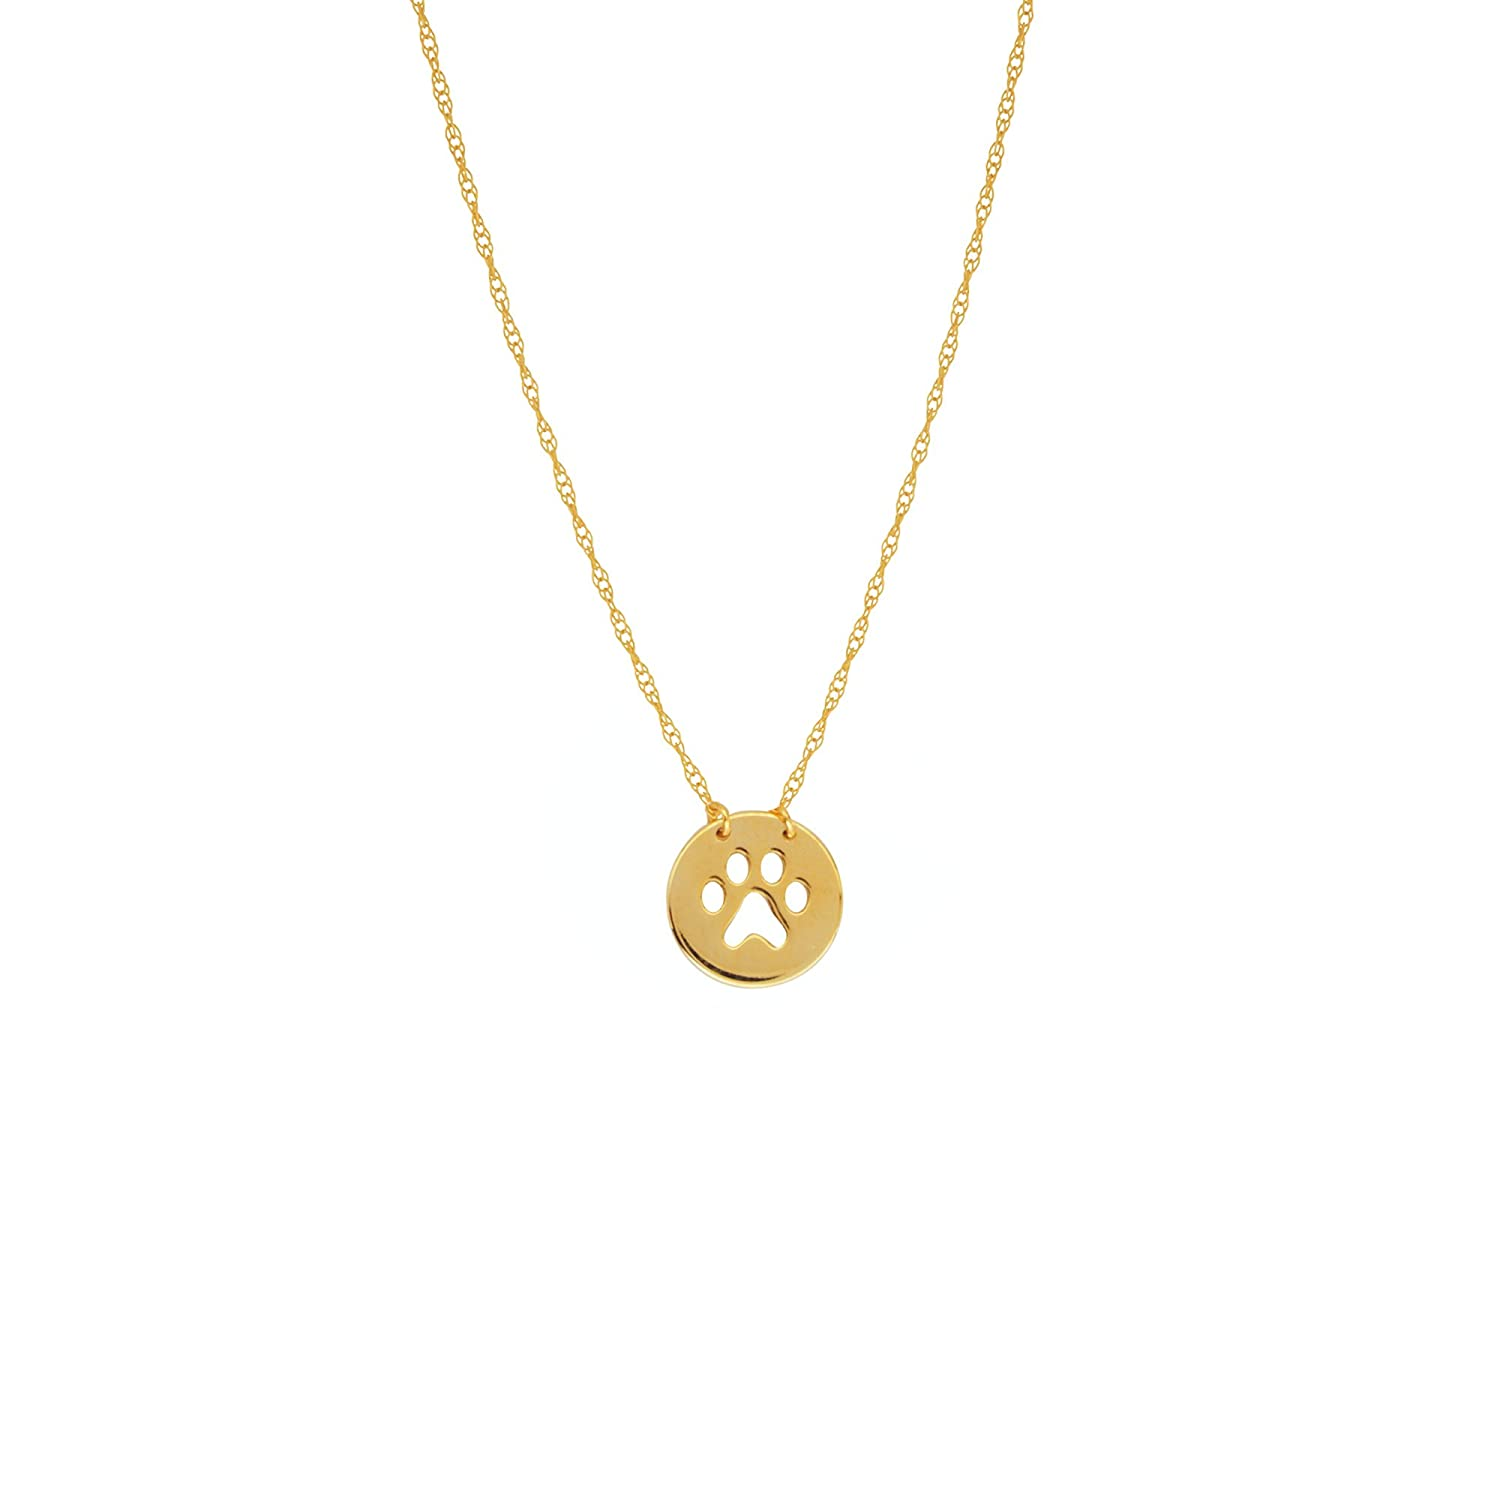 PAW PENDANT,14KT GOLD PAW NECKLACE 18 INCHES